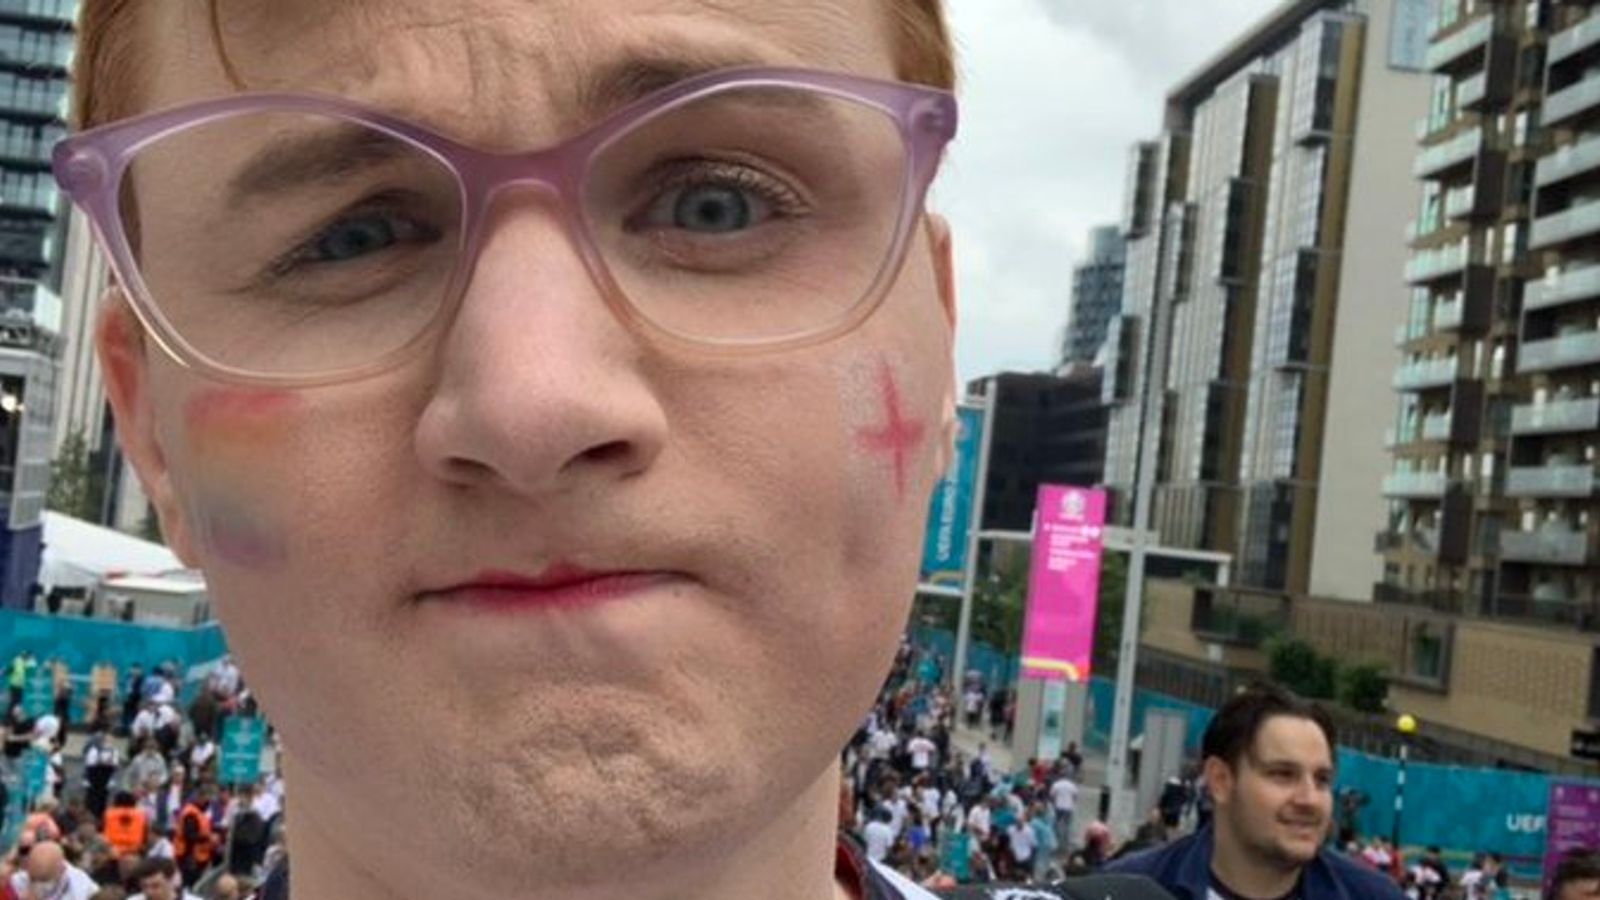 The beautiful game 'has to be beautiful for everyone': Joe White's England makeup a victory for inclusion